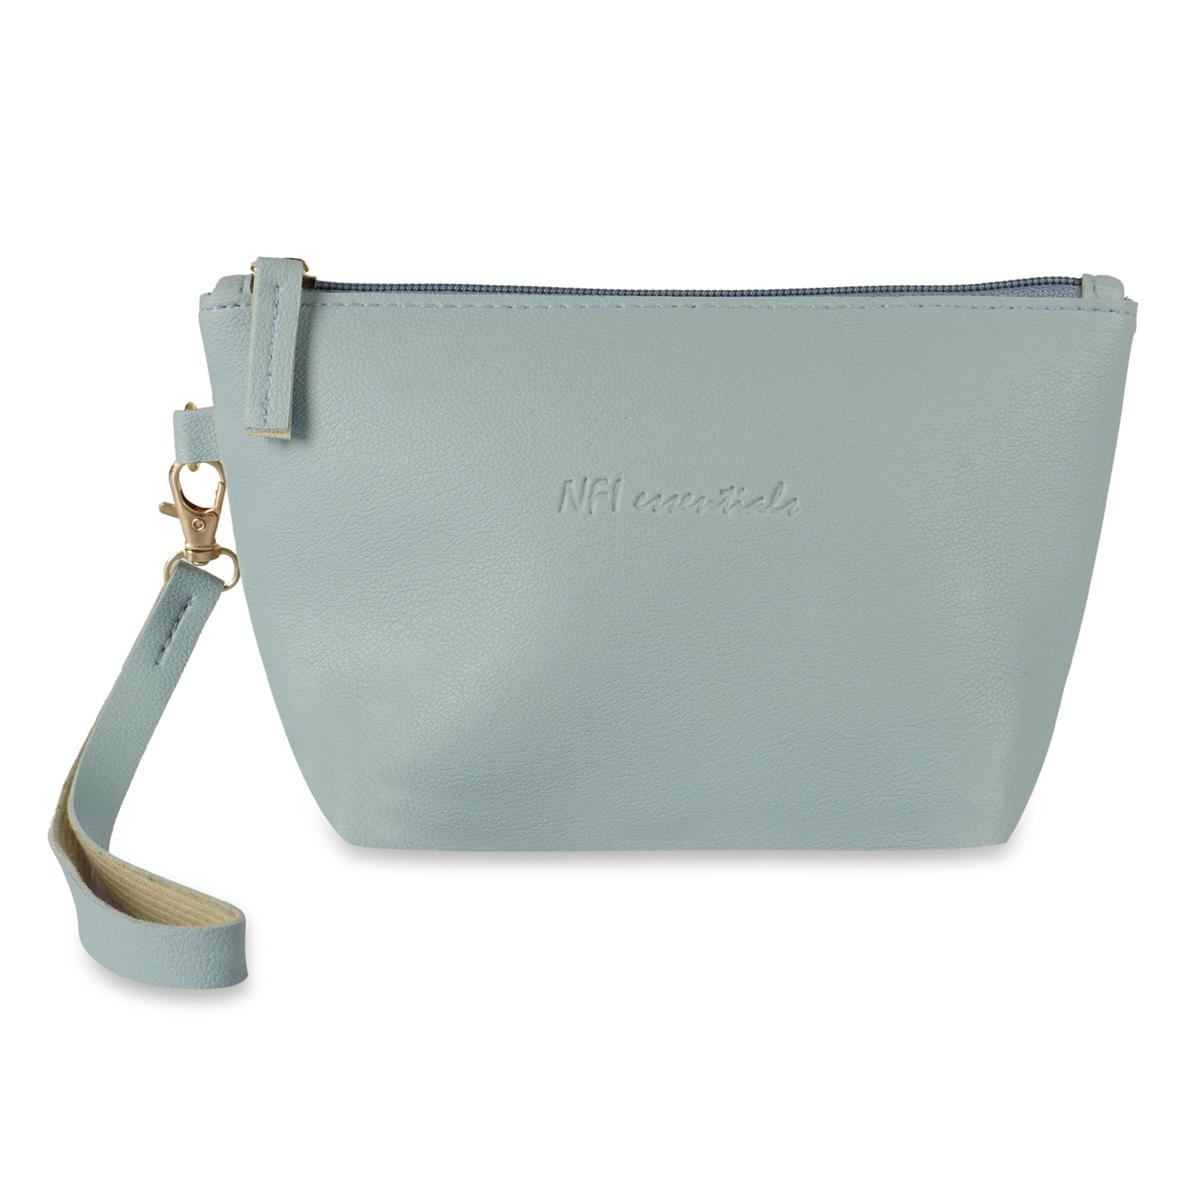 NFI essentials - Cosmetic Pouch (Light Blue)